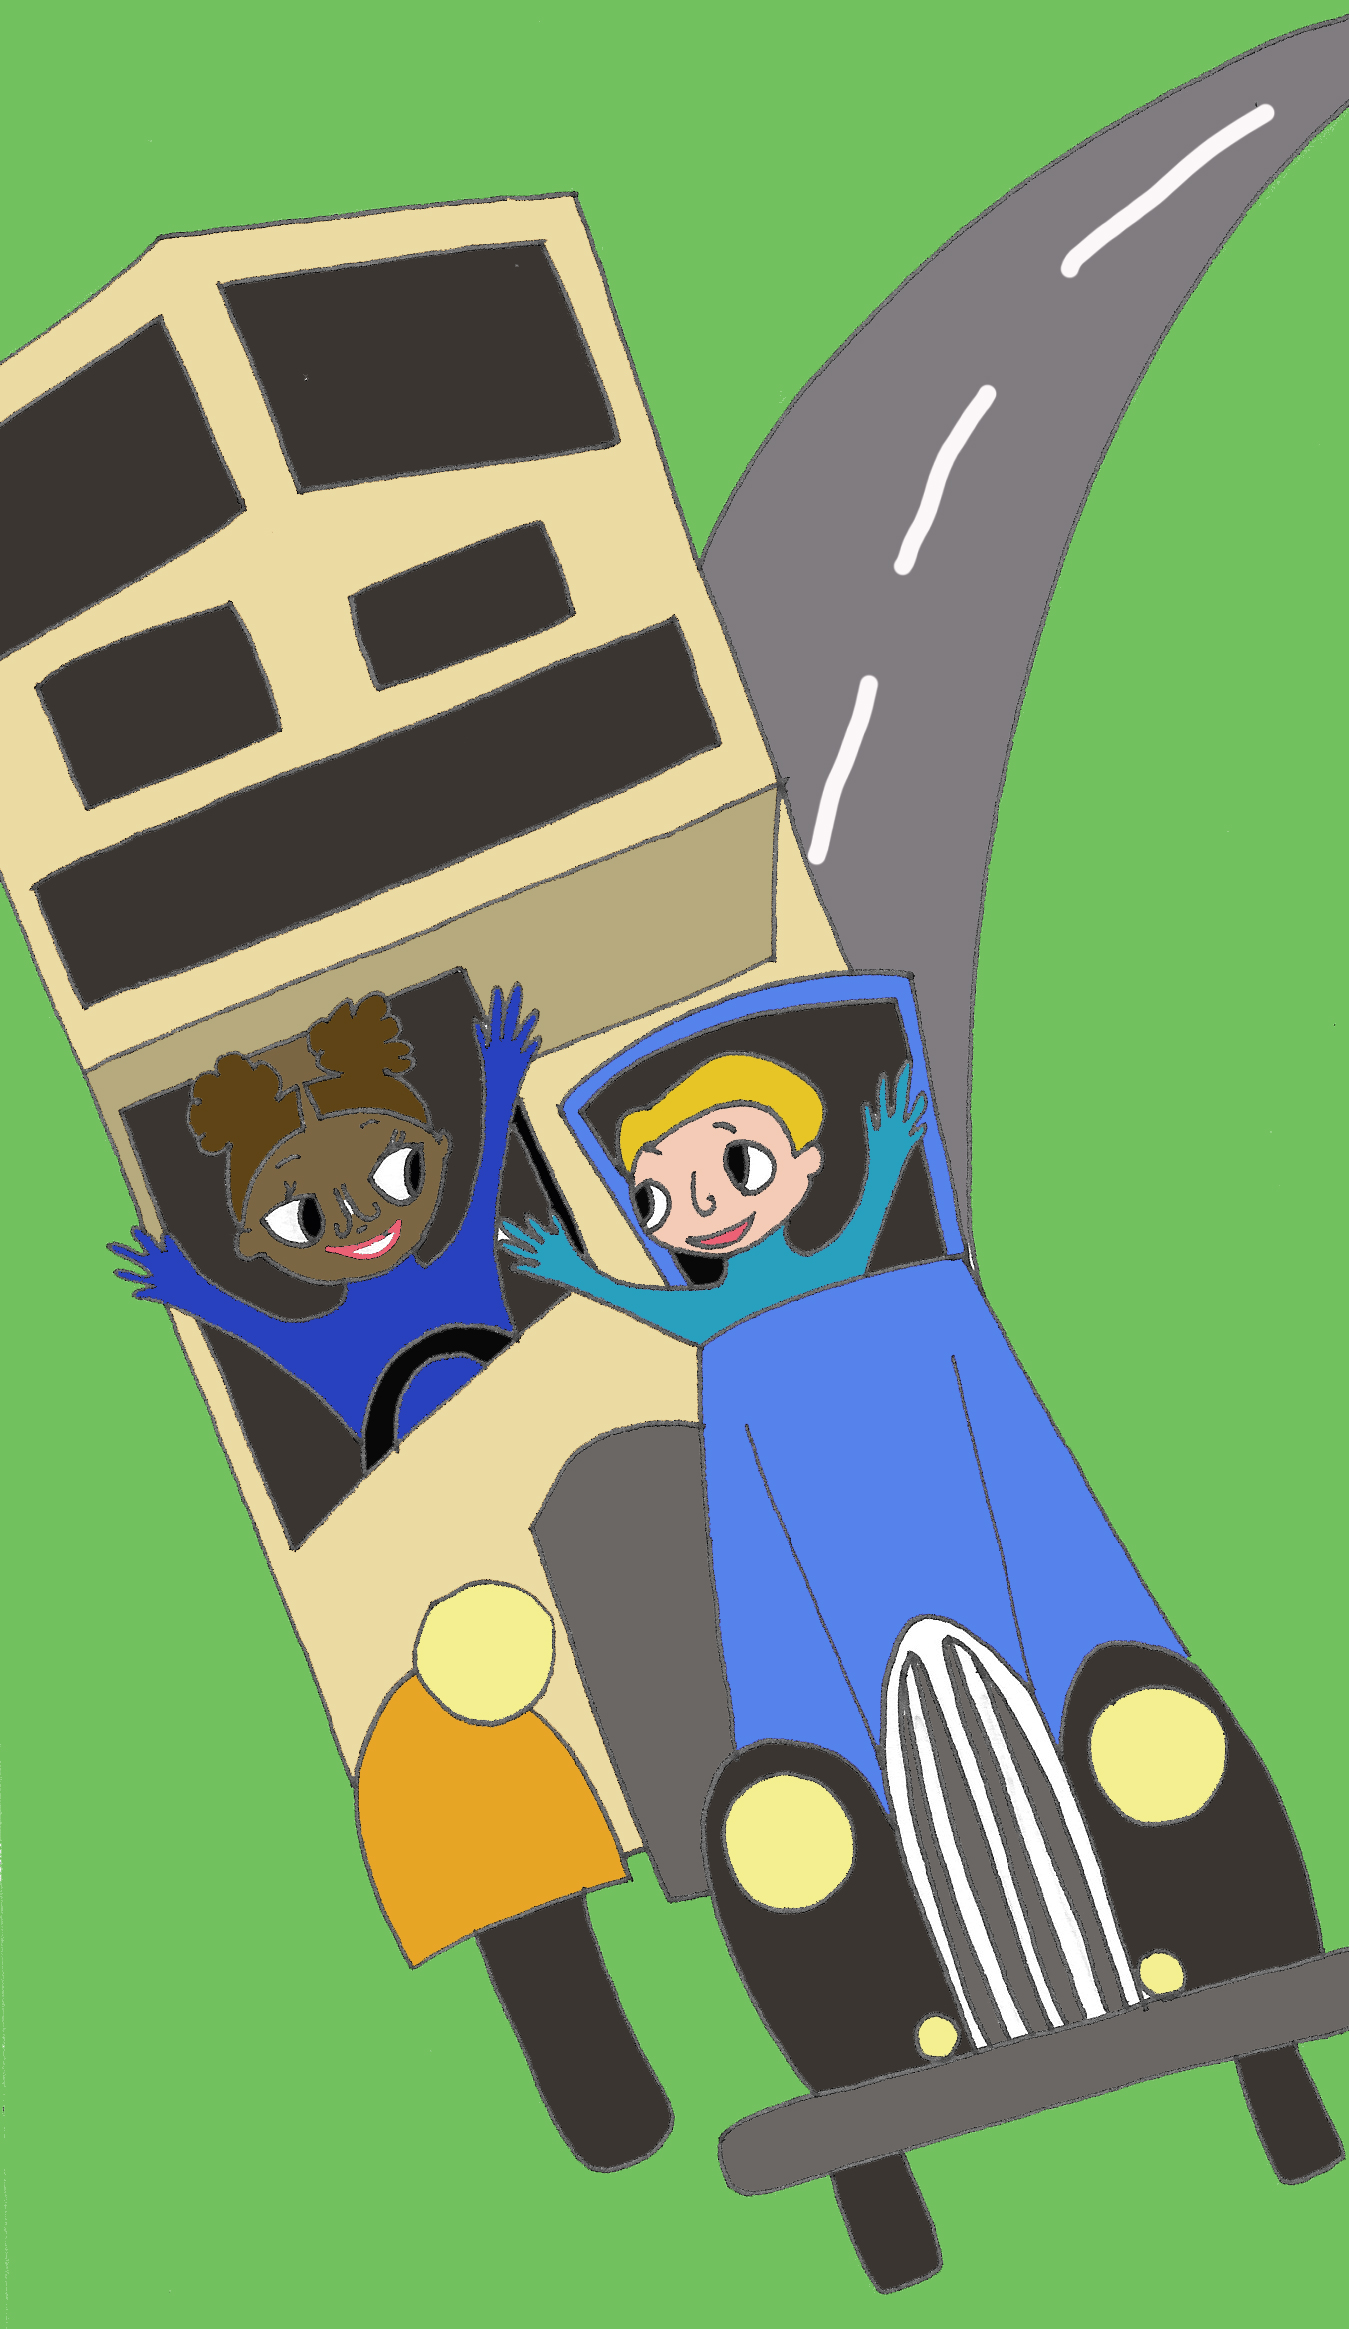 Transport kids visual 2psd.jpg